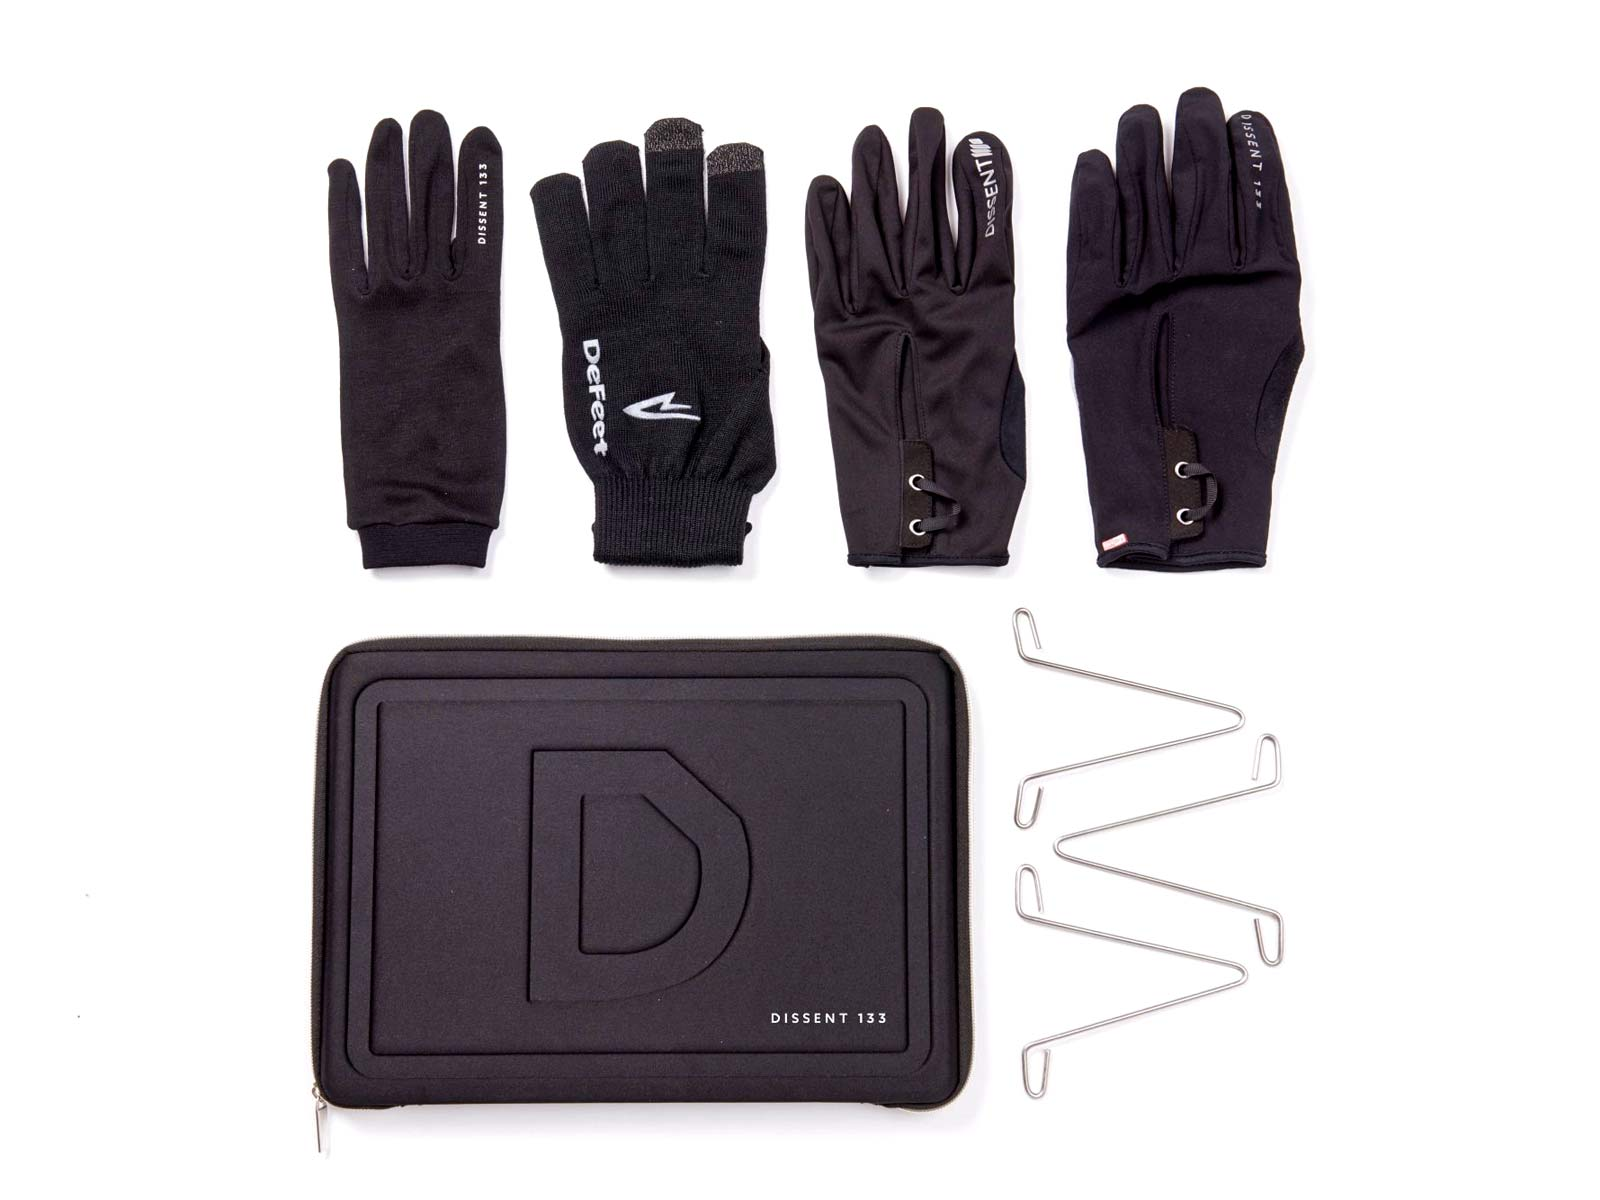 Dissent 133 by TheRiderFirm layered winter biking gloves wet cold cycling glove system Ultimate Pack four glove system